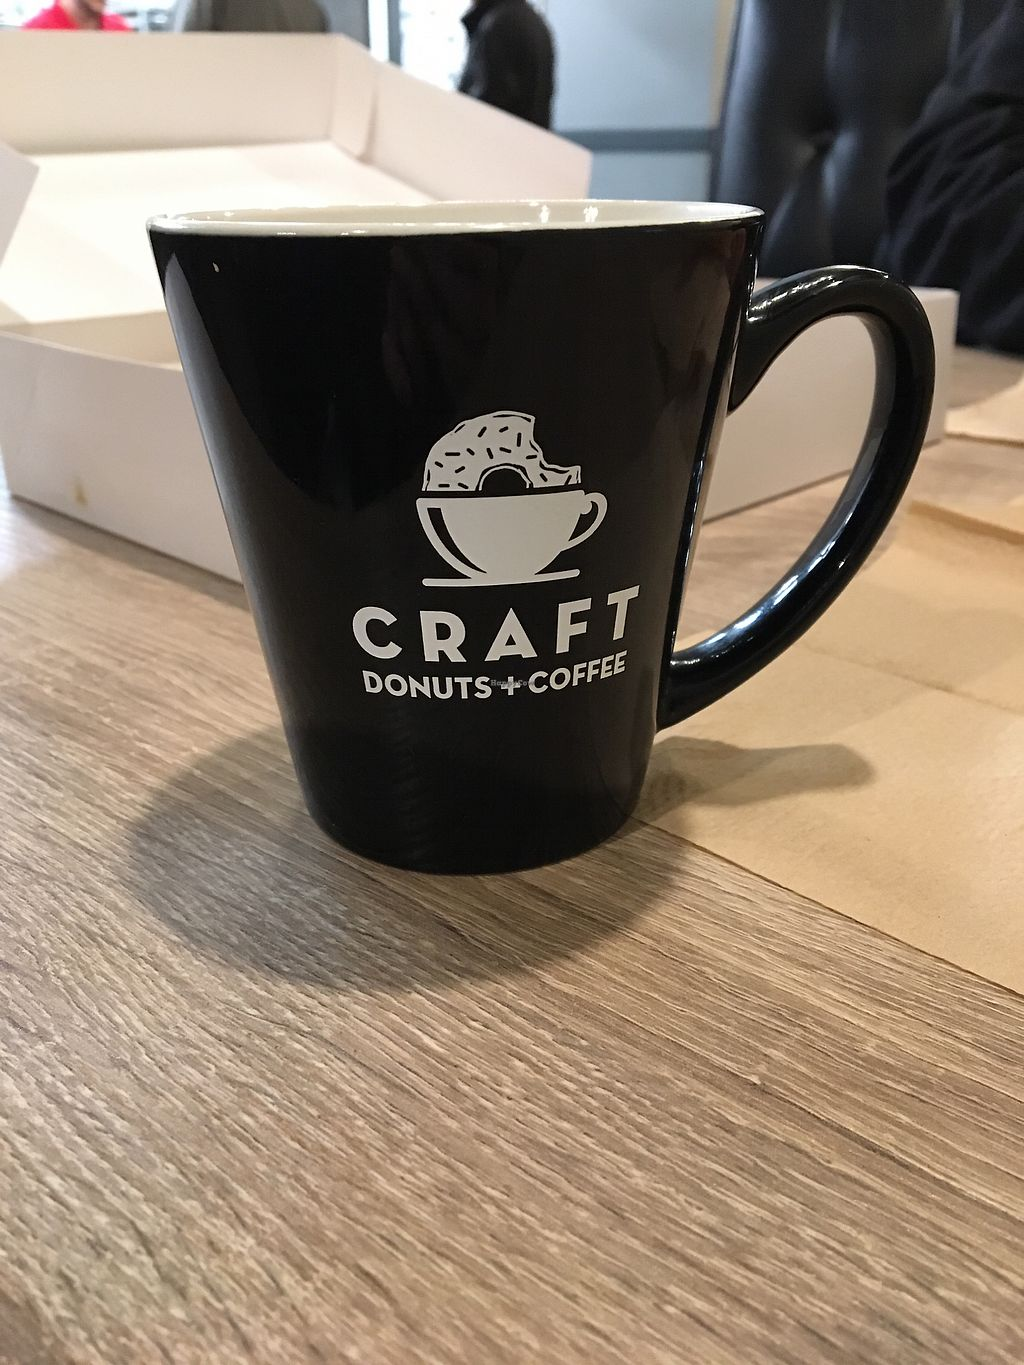 "Photo of Craft Donuts + Coffee  by <a href=""/members/profile/Mpveg"">Mpveg</a> <br/>Latte <br/> January 29, 2018  - <a href='/contact/abuse/image/110666/352294'>Report</a>"